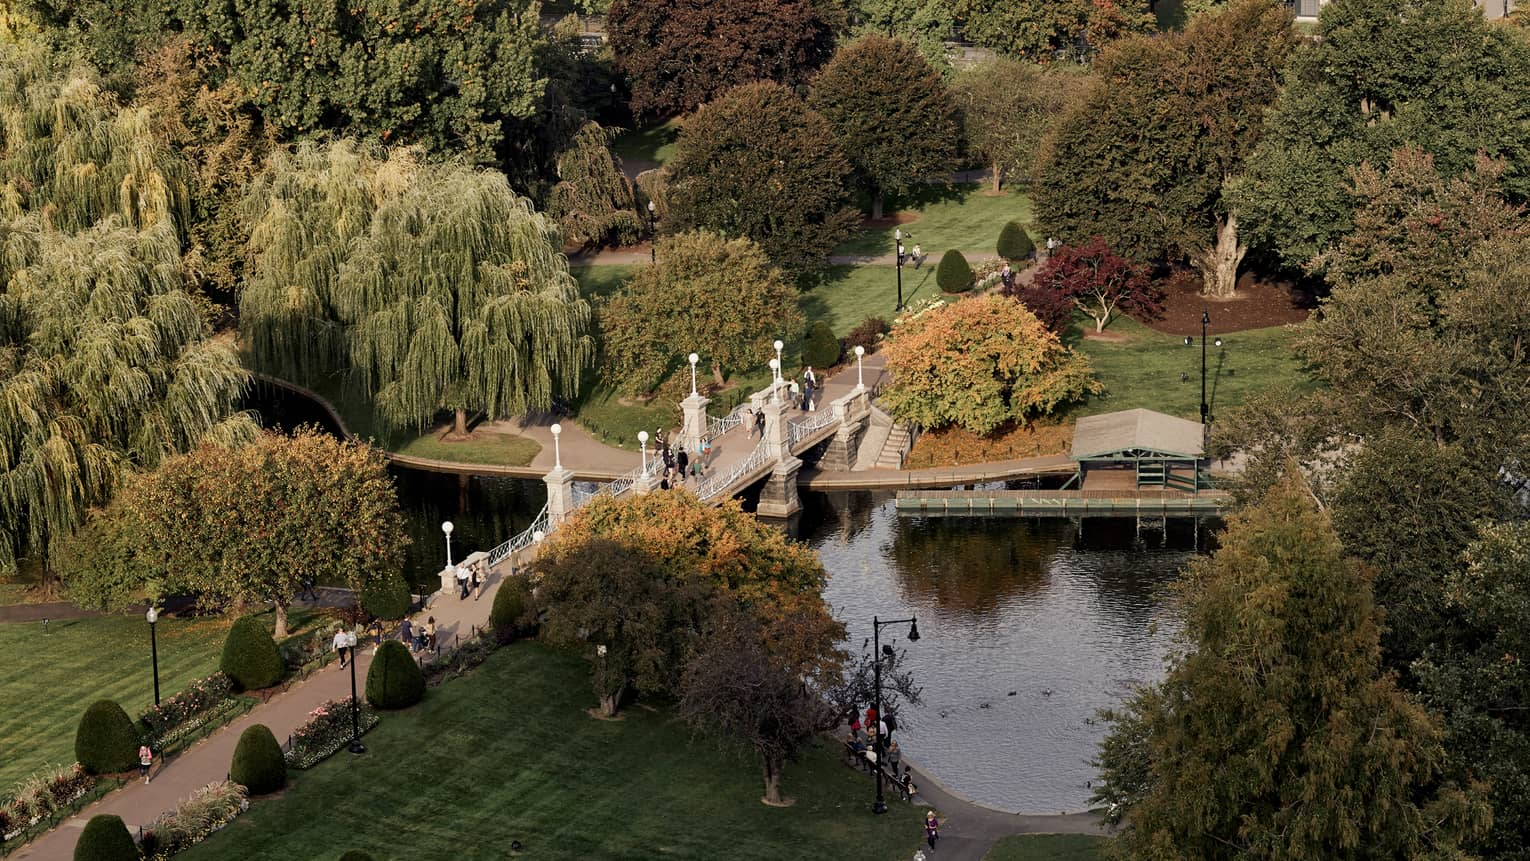 Aerial view of Boston Public Garden path and bridge over canal, large green trees